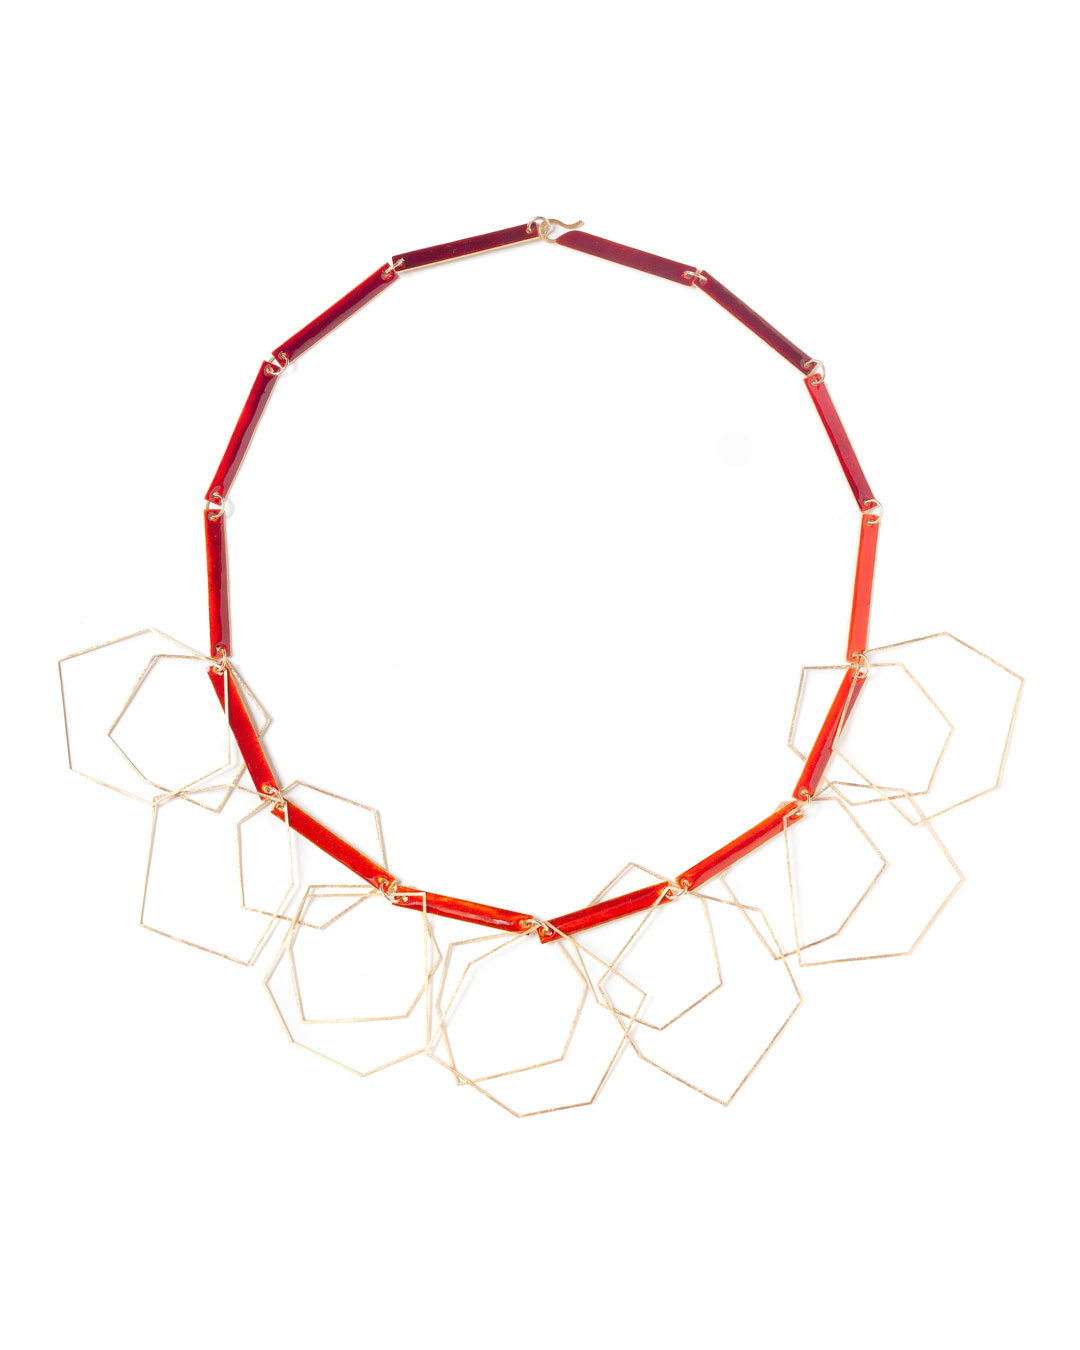 Karola Torkos, untitled, 2020, necklace; etched gold-plated silver, 18ct gold, 14ct gold, Ceramit enamel, L 570 mm, €2350